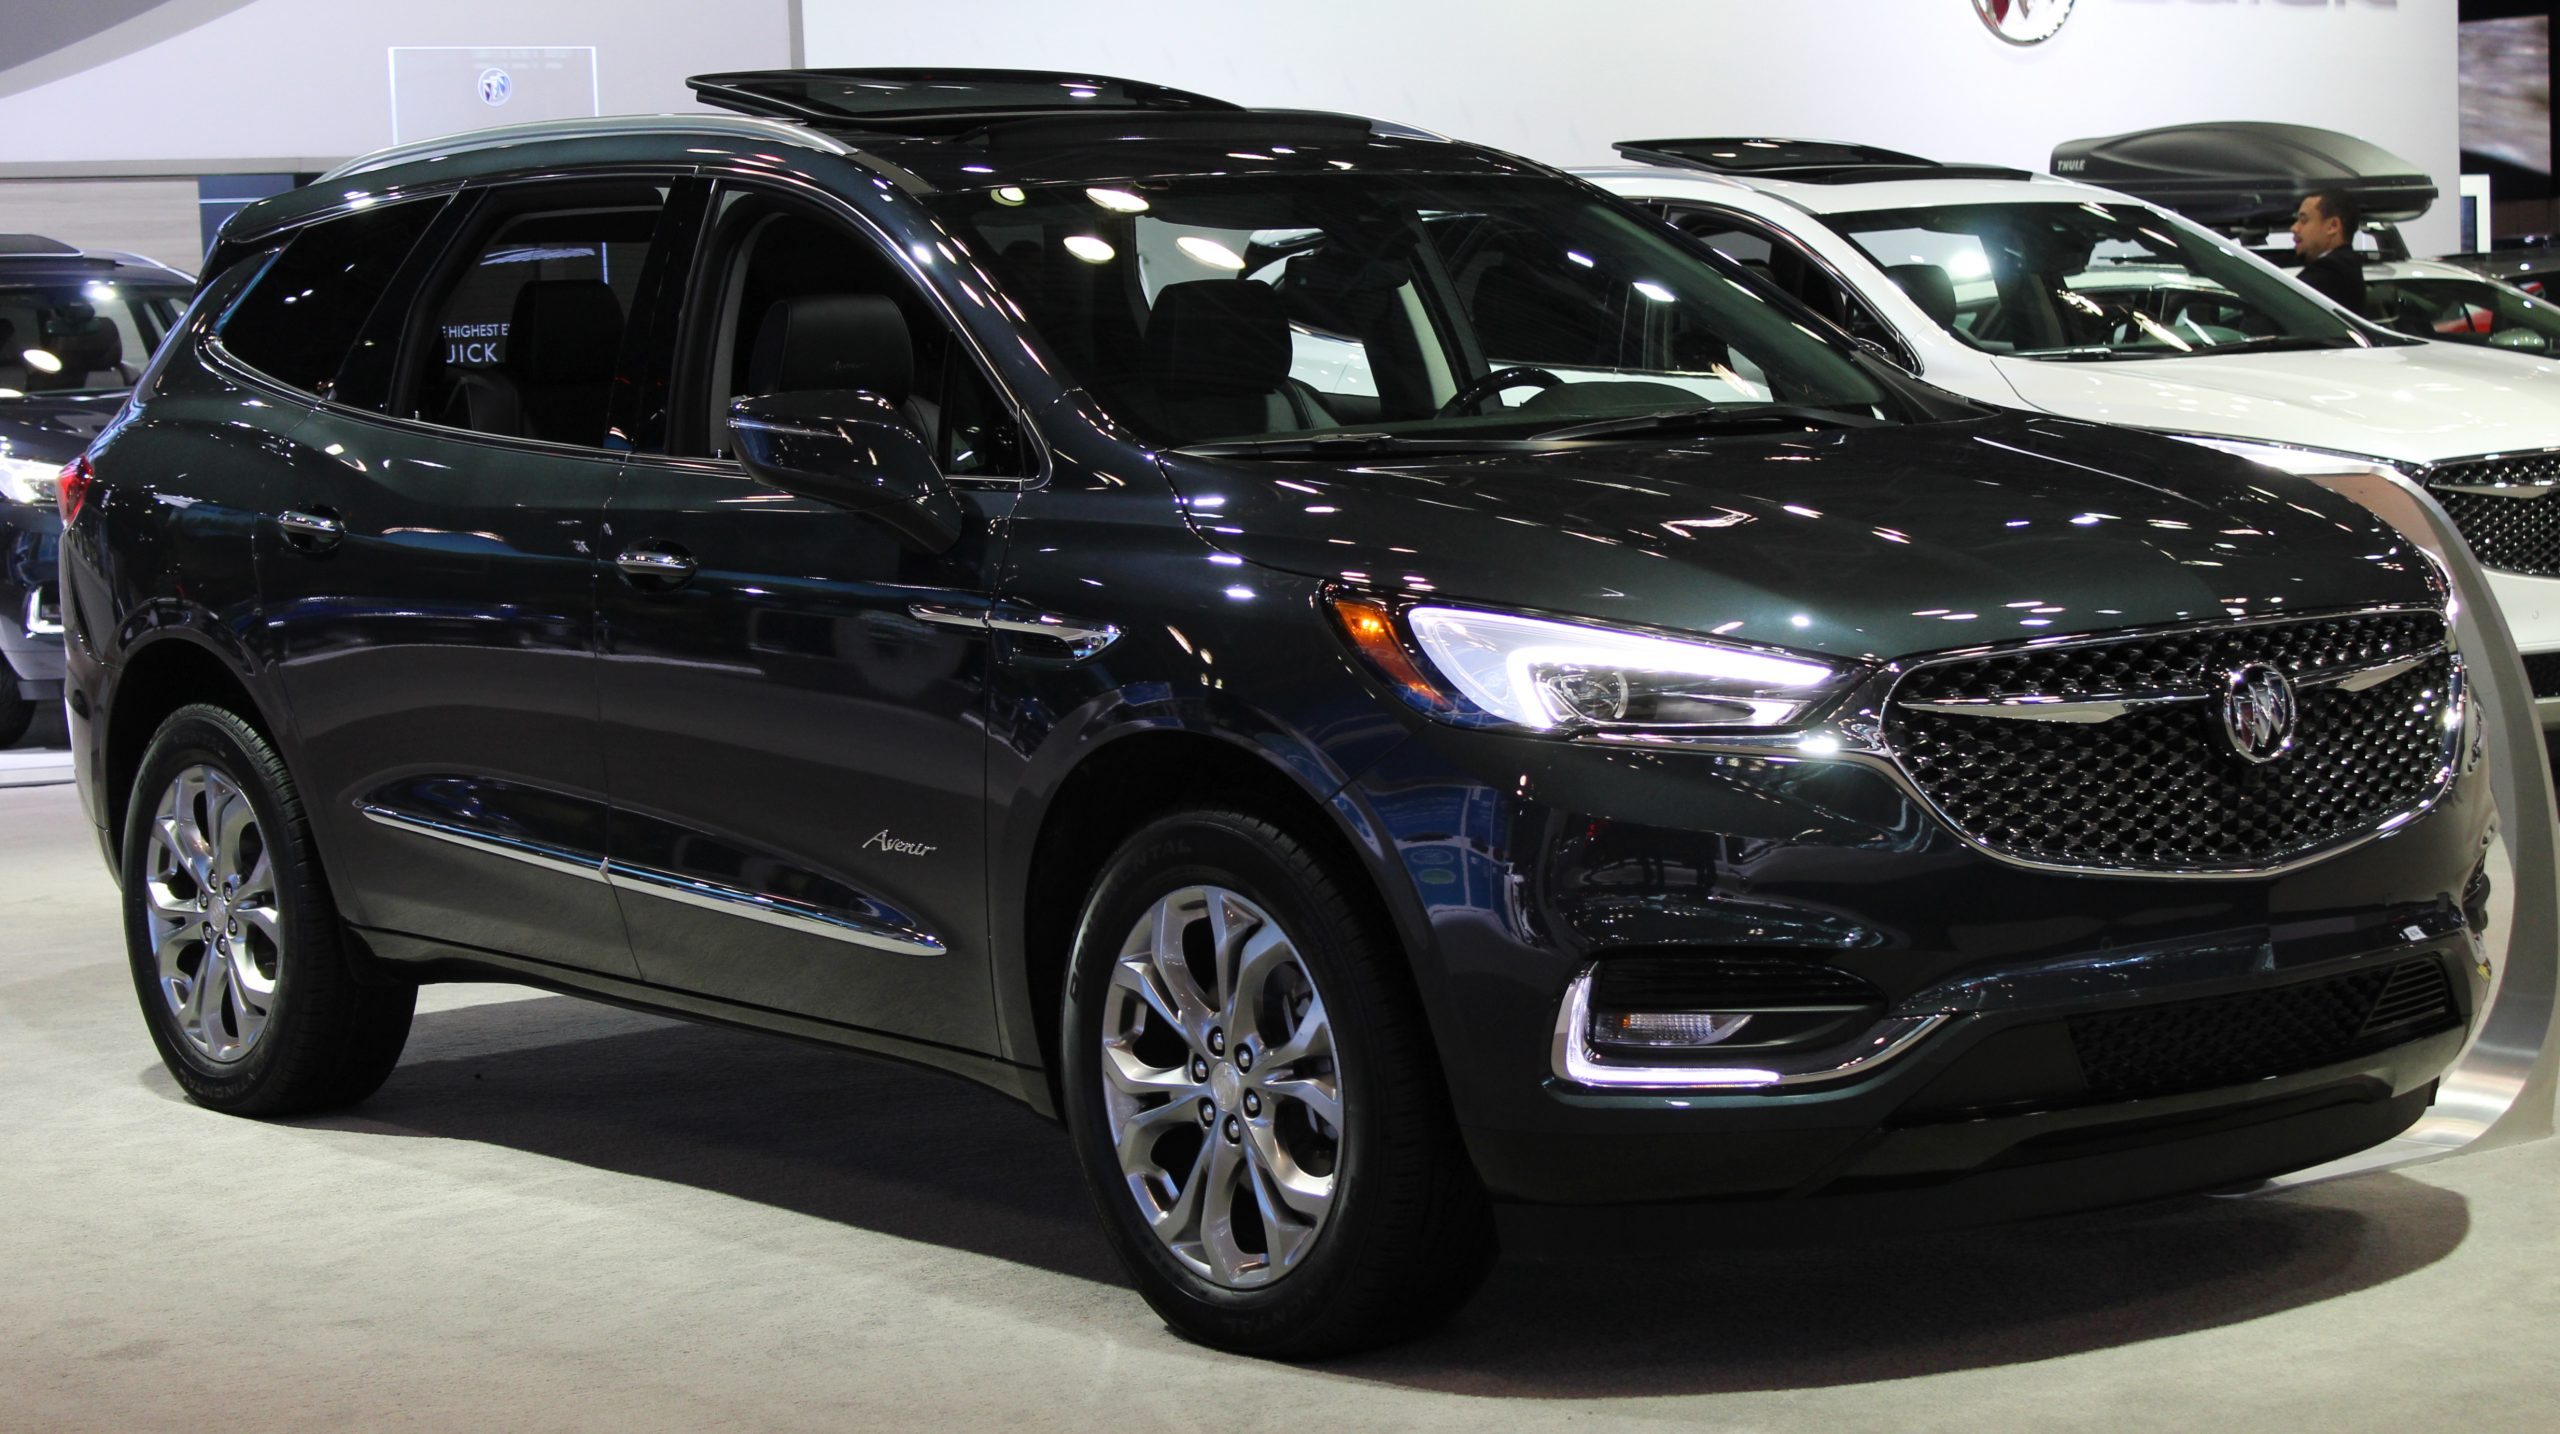 Buick Enclave - Wikipedia 2022 Buick Enclave Ground Clearance, Gas Type, Horsepower